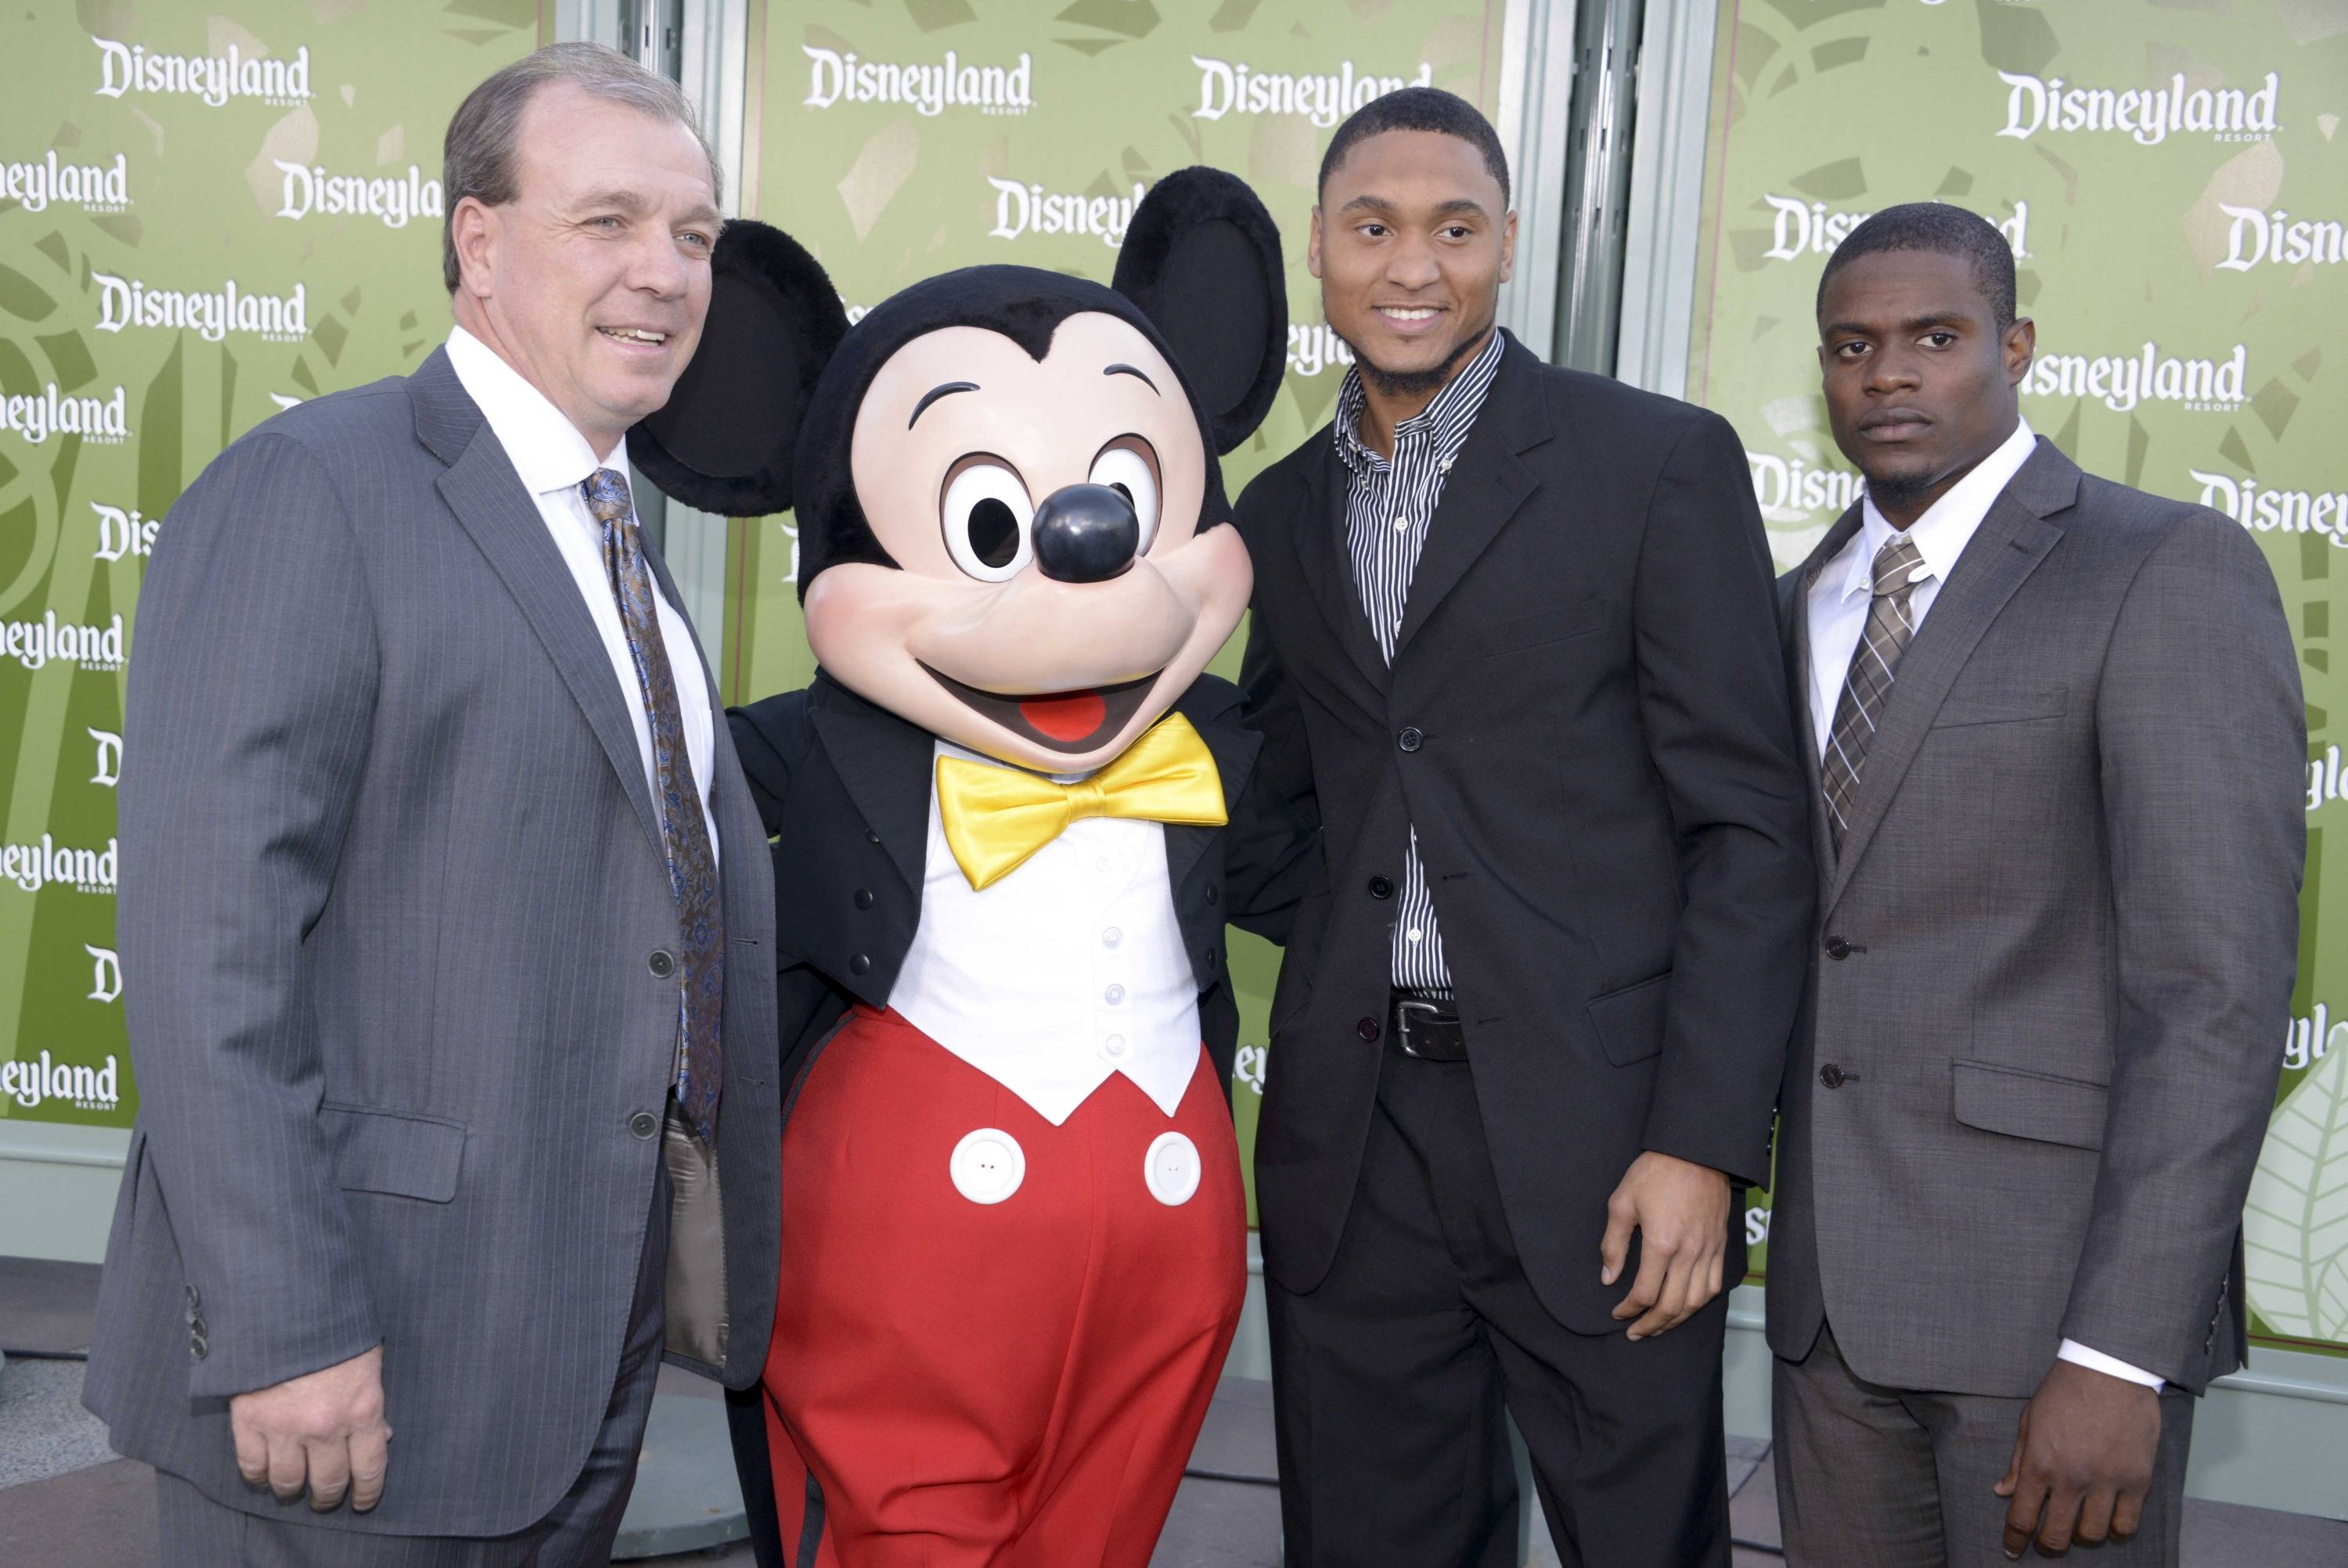 Florida State Seminoles coach Jimbo Fisher (left) poses with Mickey Mouse (second from left) and receiver Rashad Greene (second from right) and defensive back Lamarcus Joyner at a press conference for the 2014 BCS National Championship at ESPN Zone Downtown Disney. Mandatory Credit: Kirby Lee-USA TODAY Sports